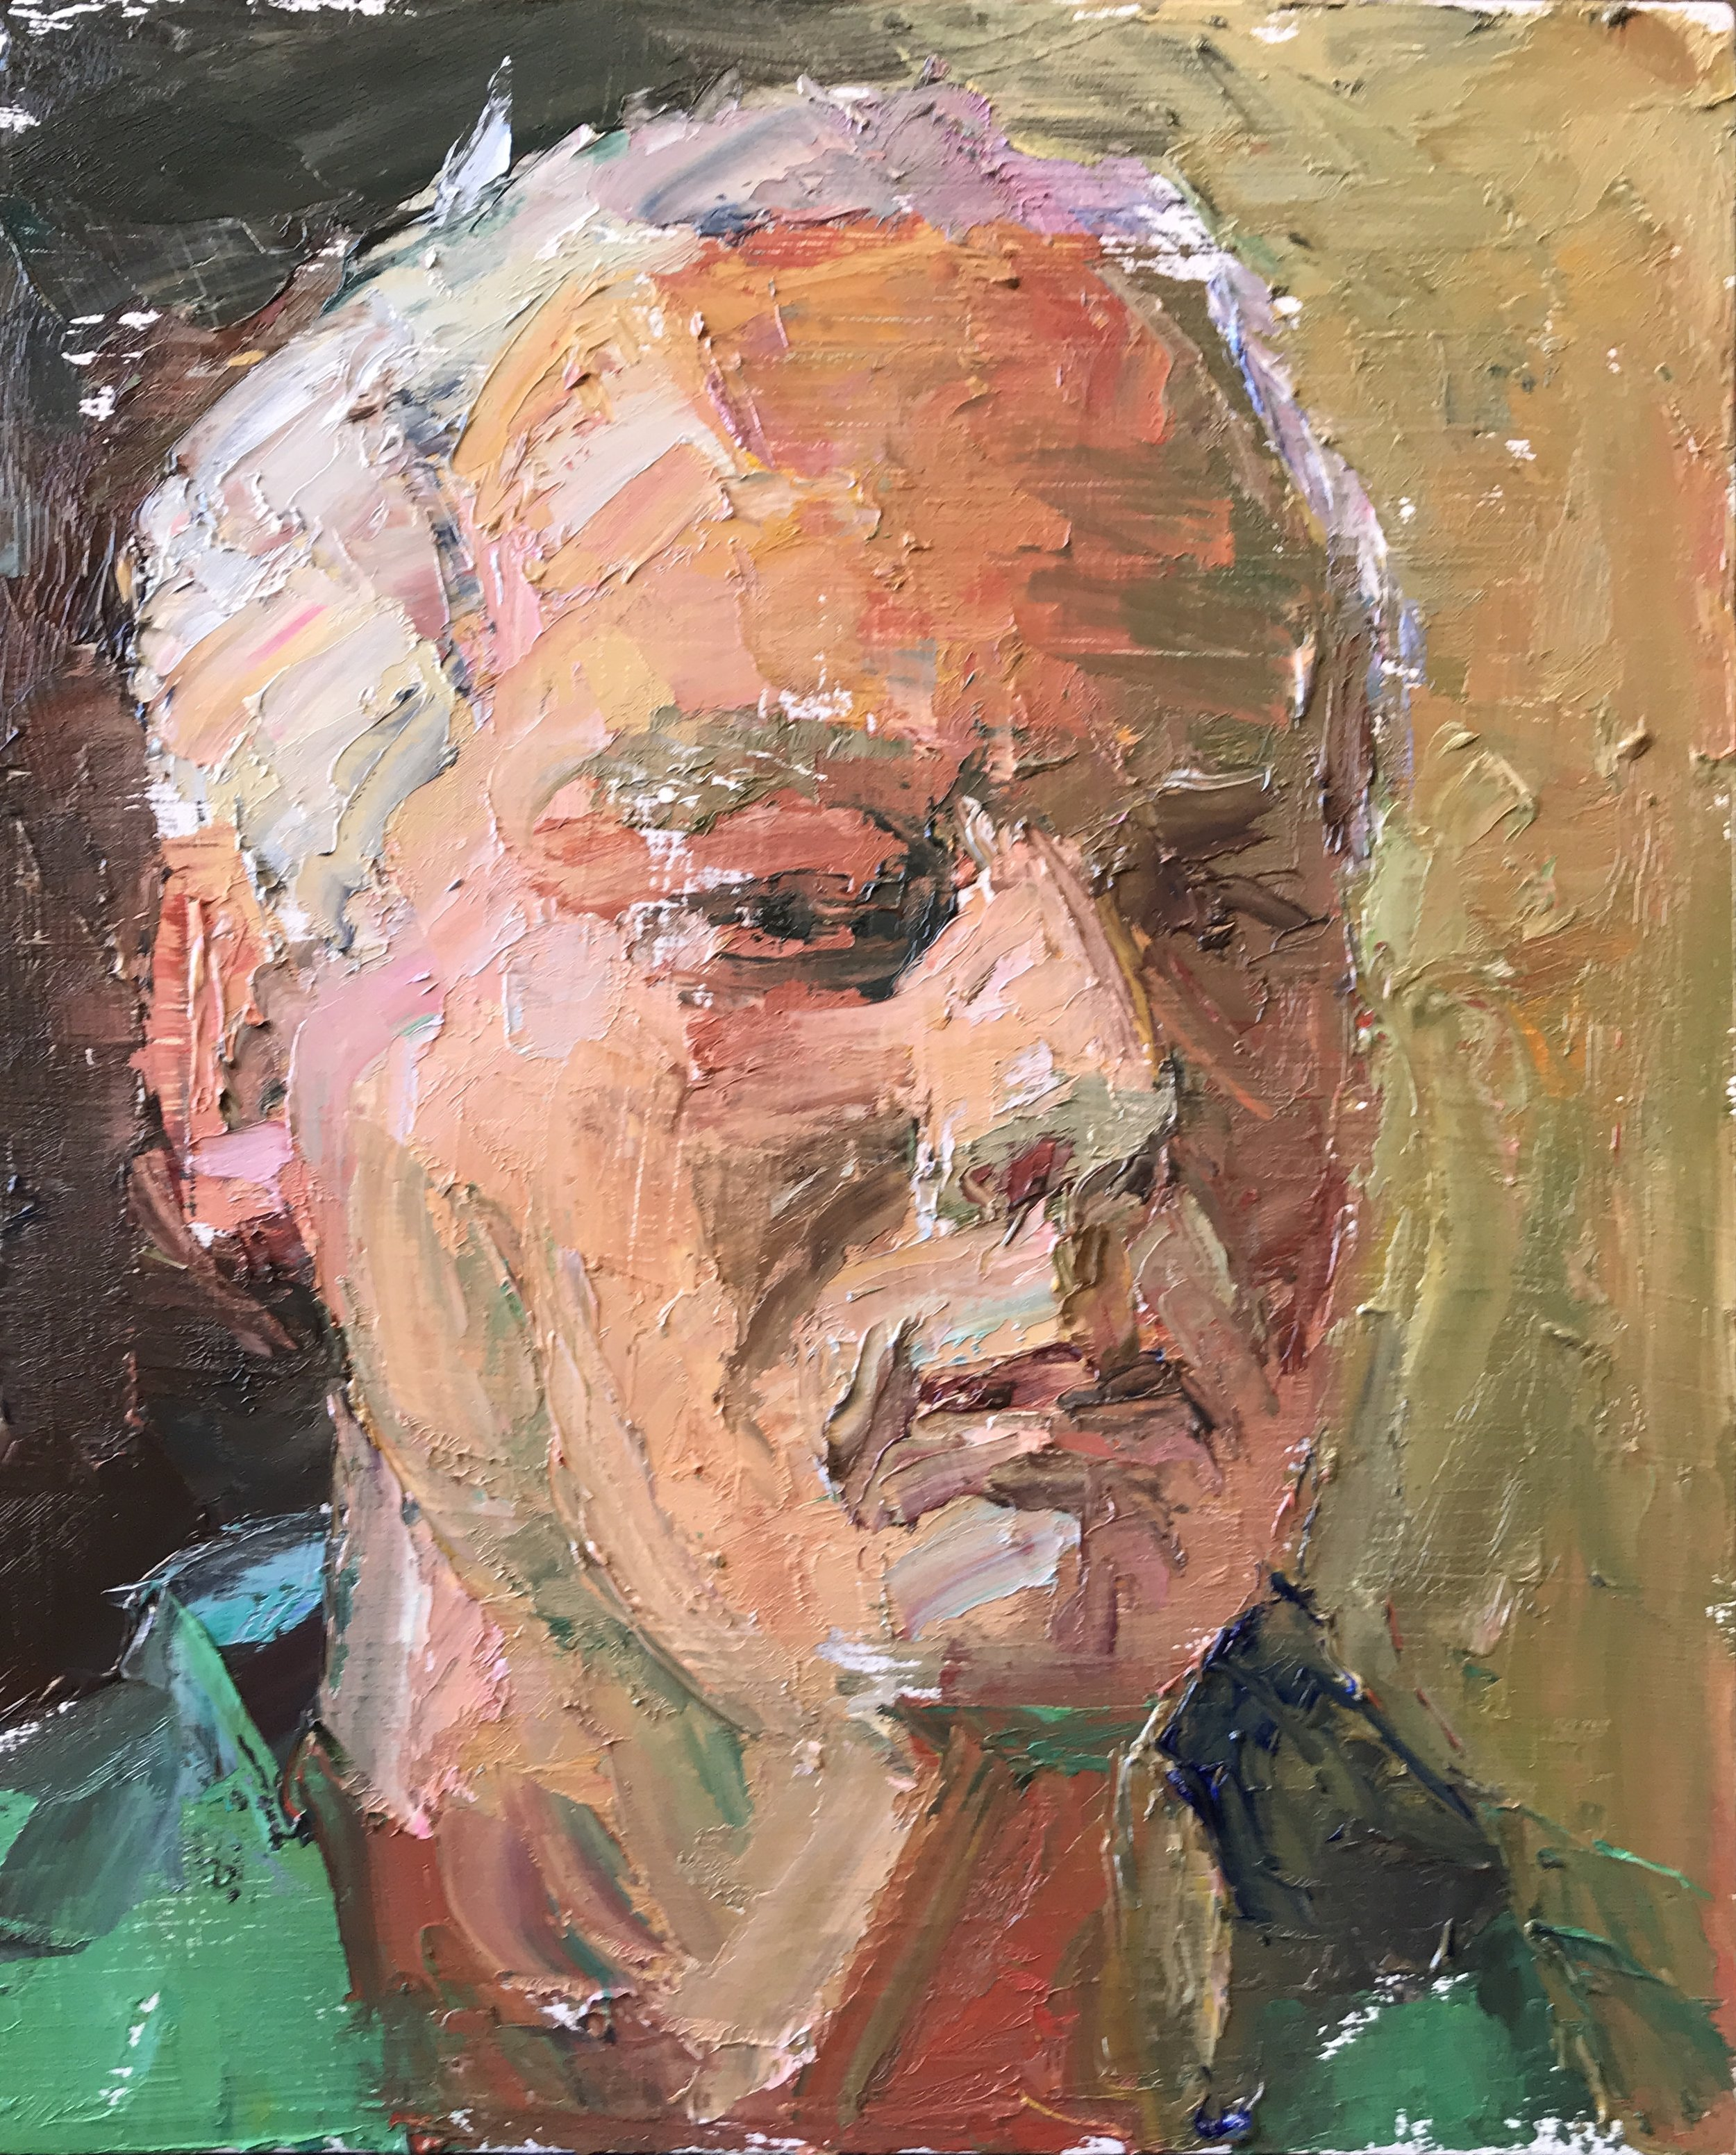 Self Portrait at 65, 11 x 9 inches, oil on panel, 2019